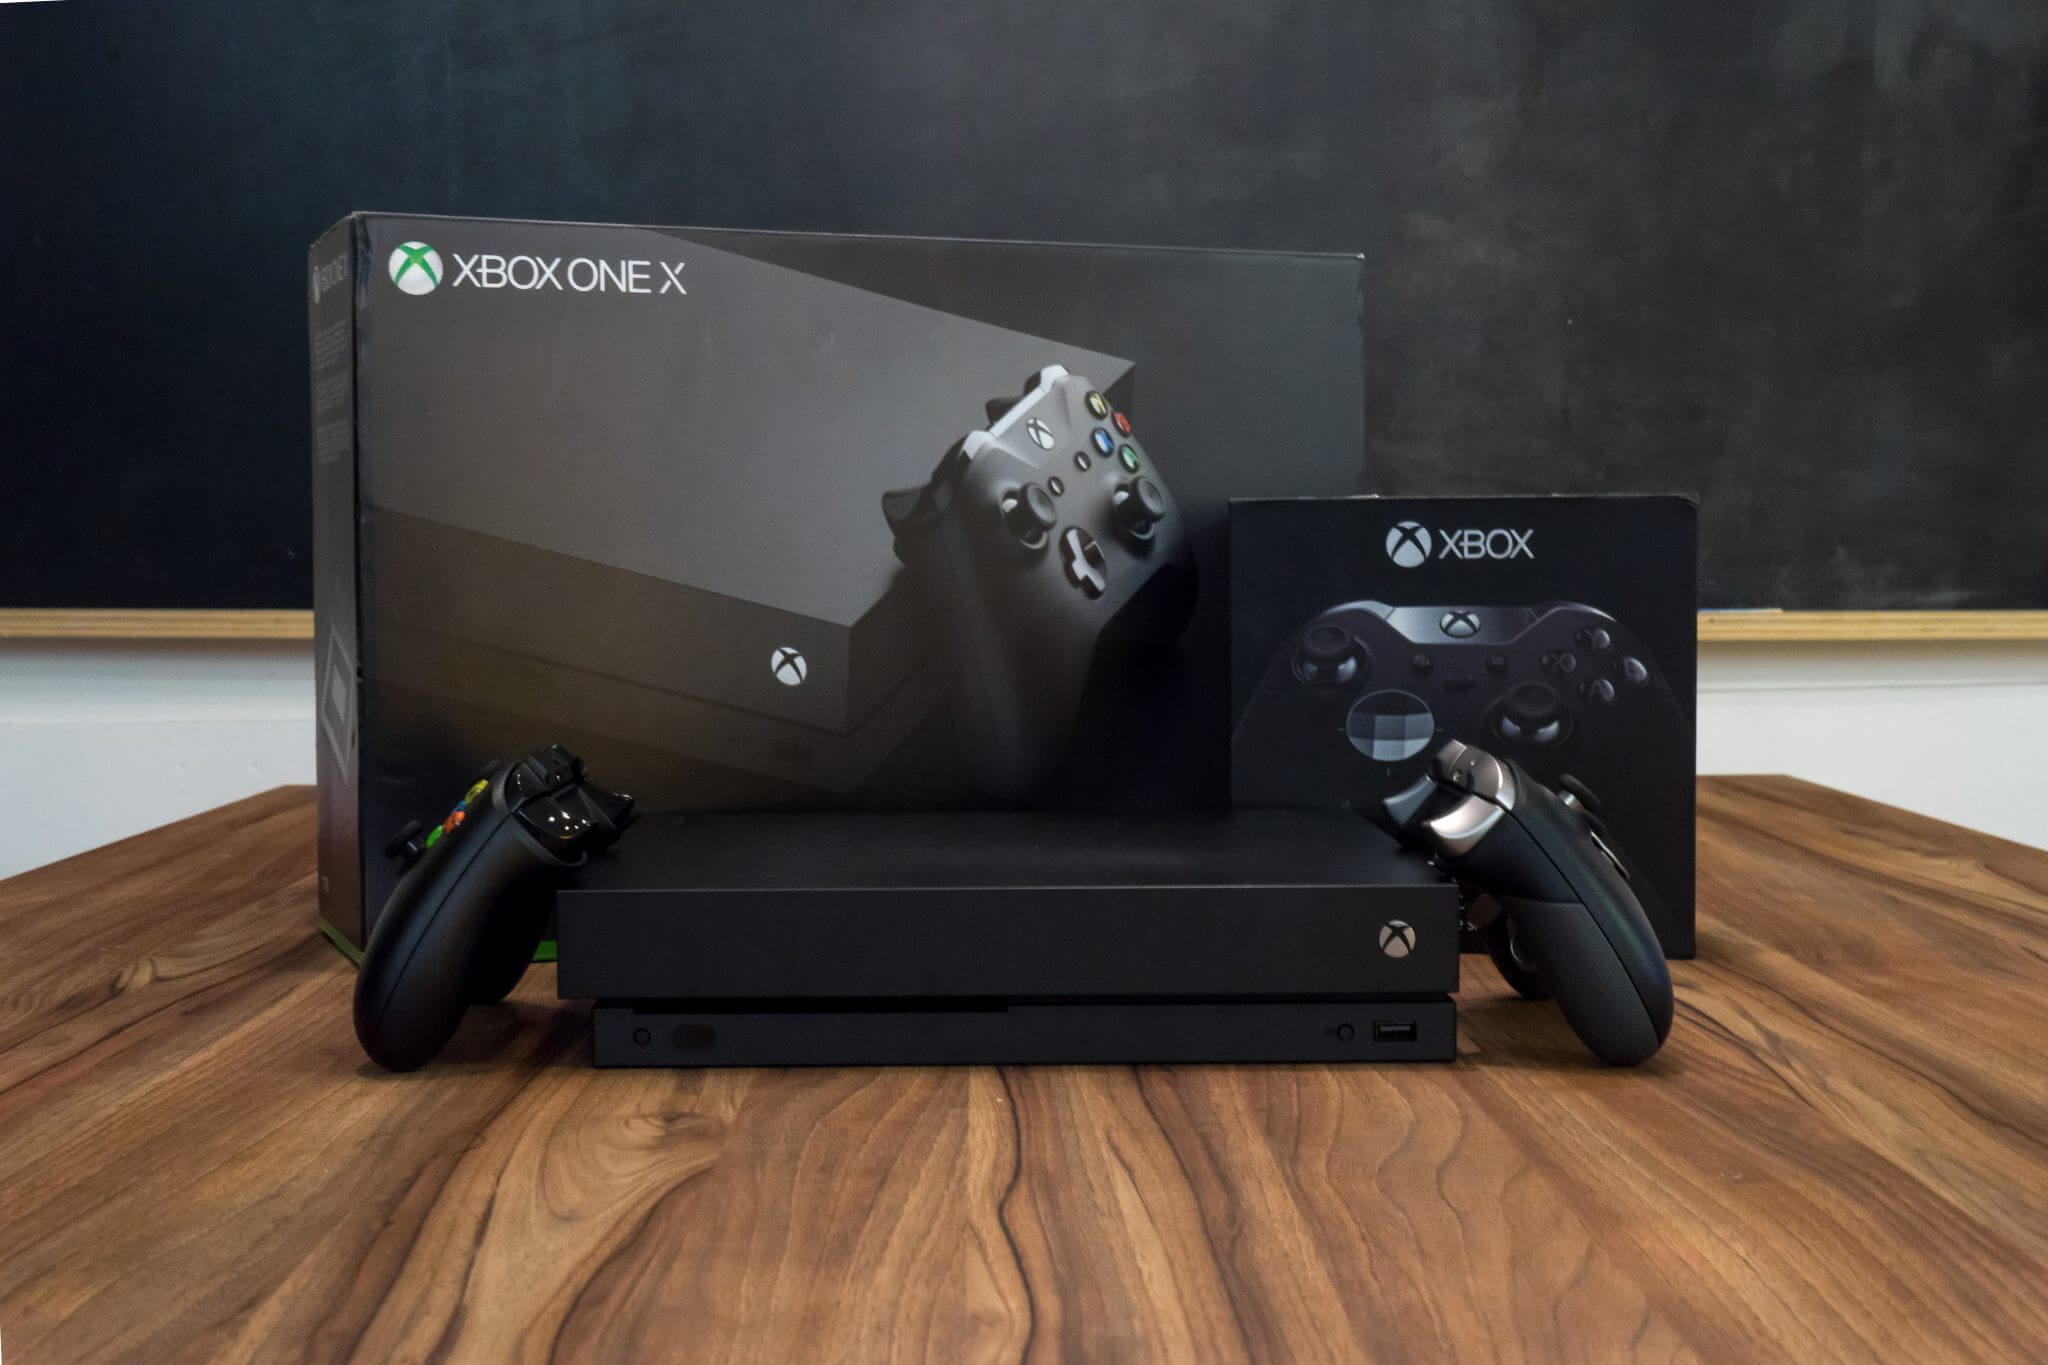 Xbox One X: Overview